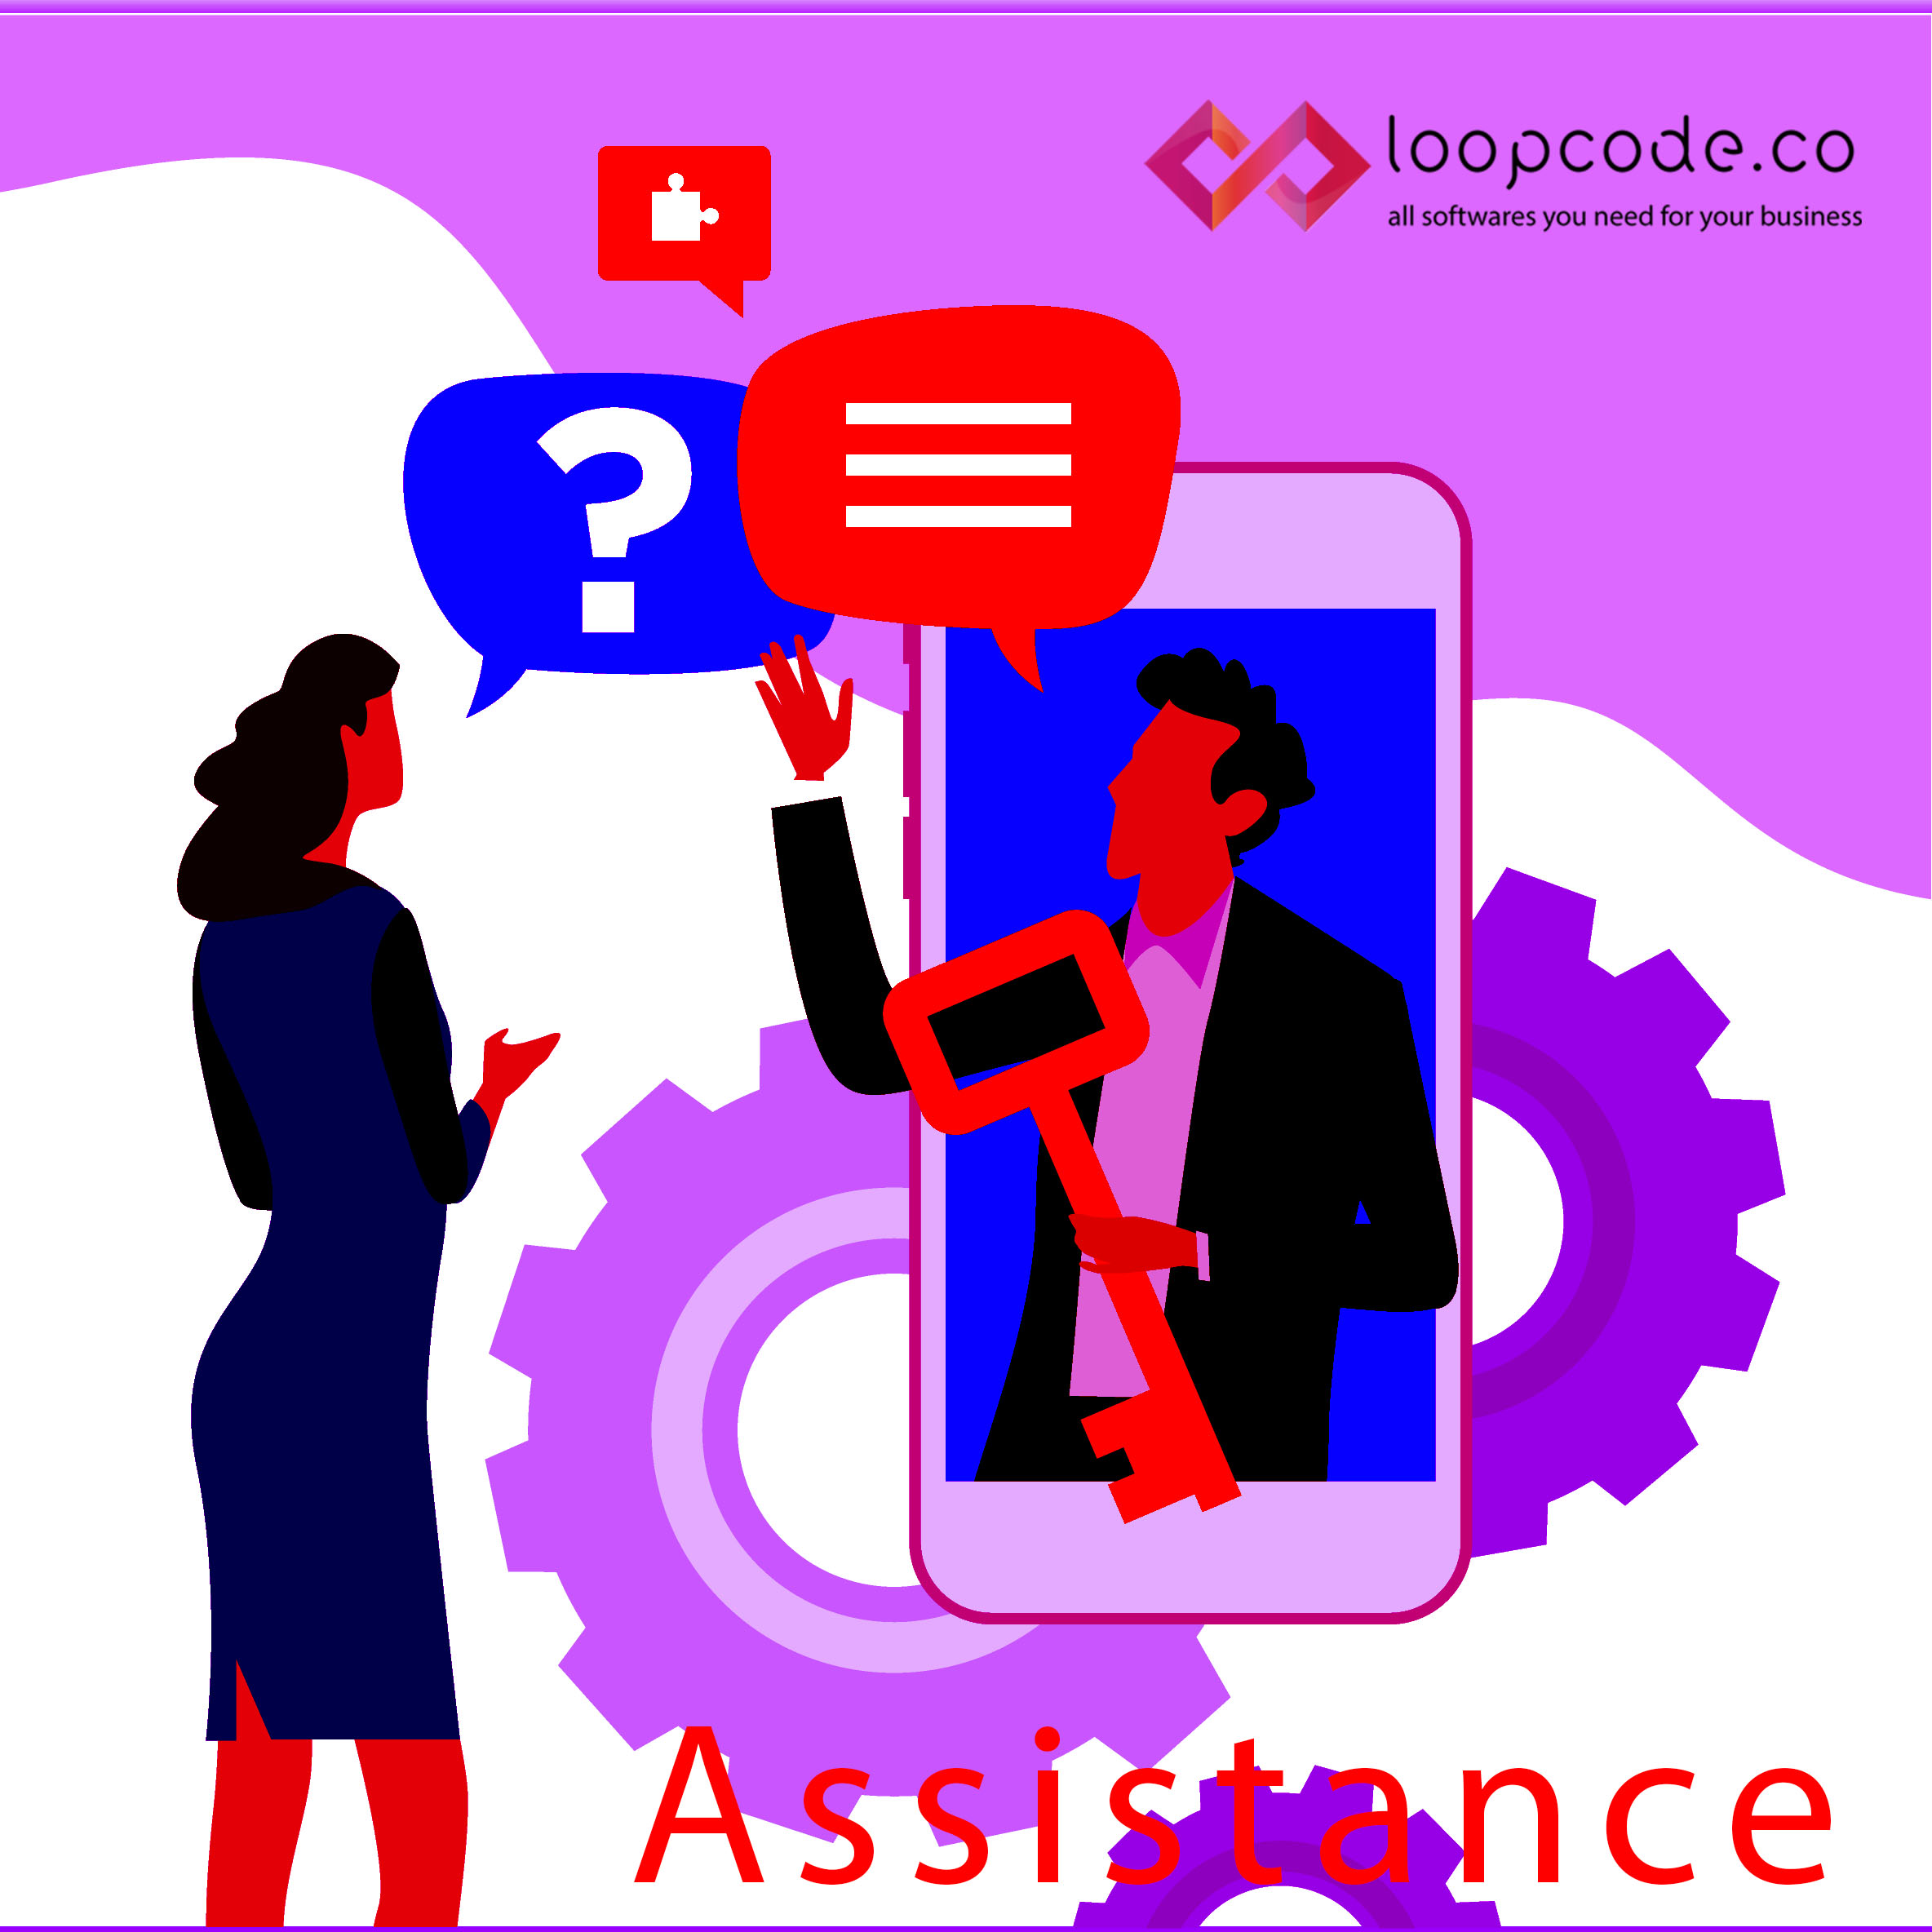 loopcode.co Assistant - Business